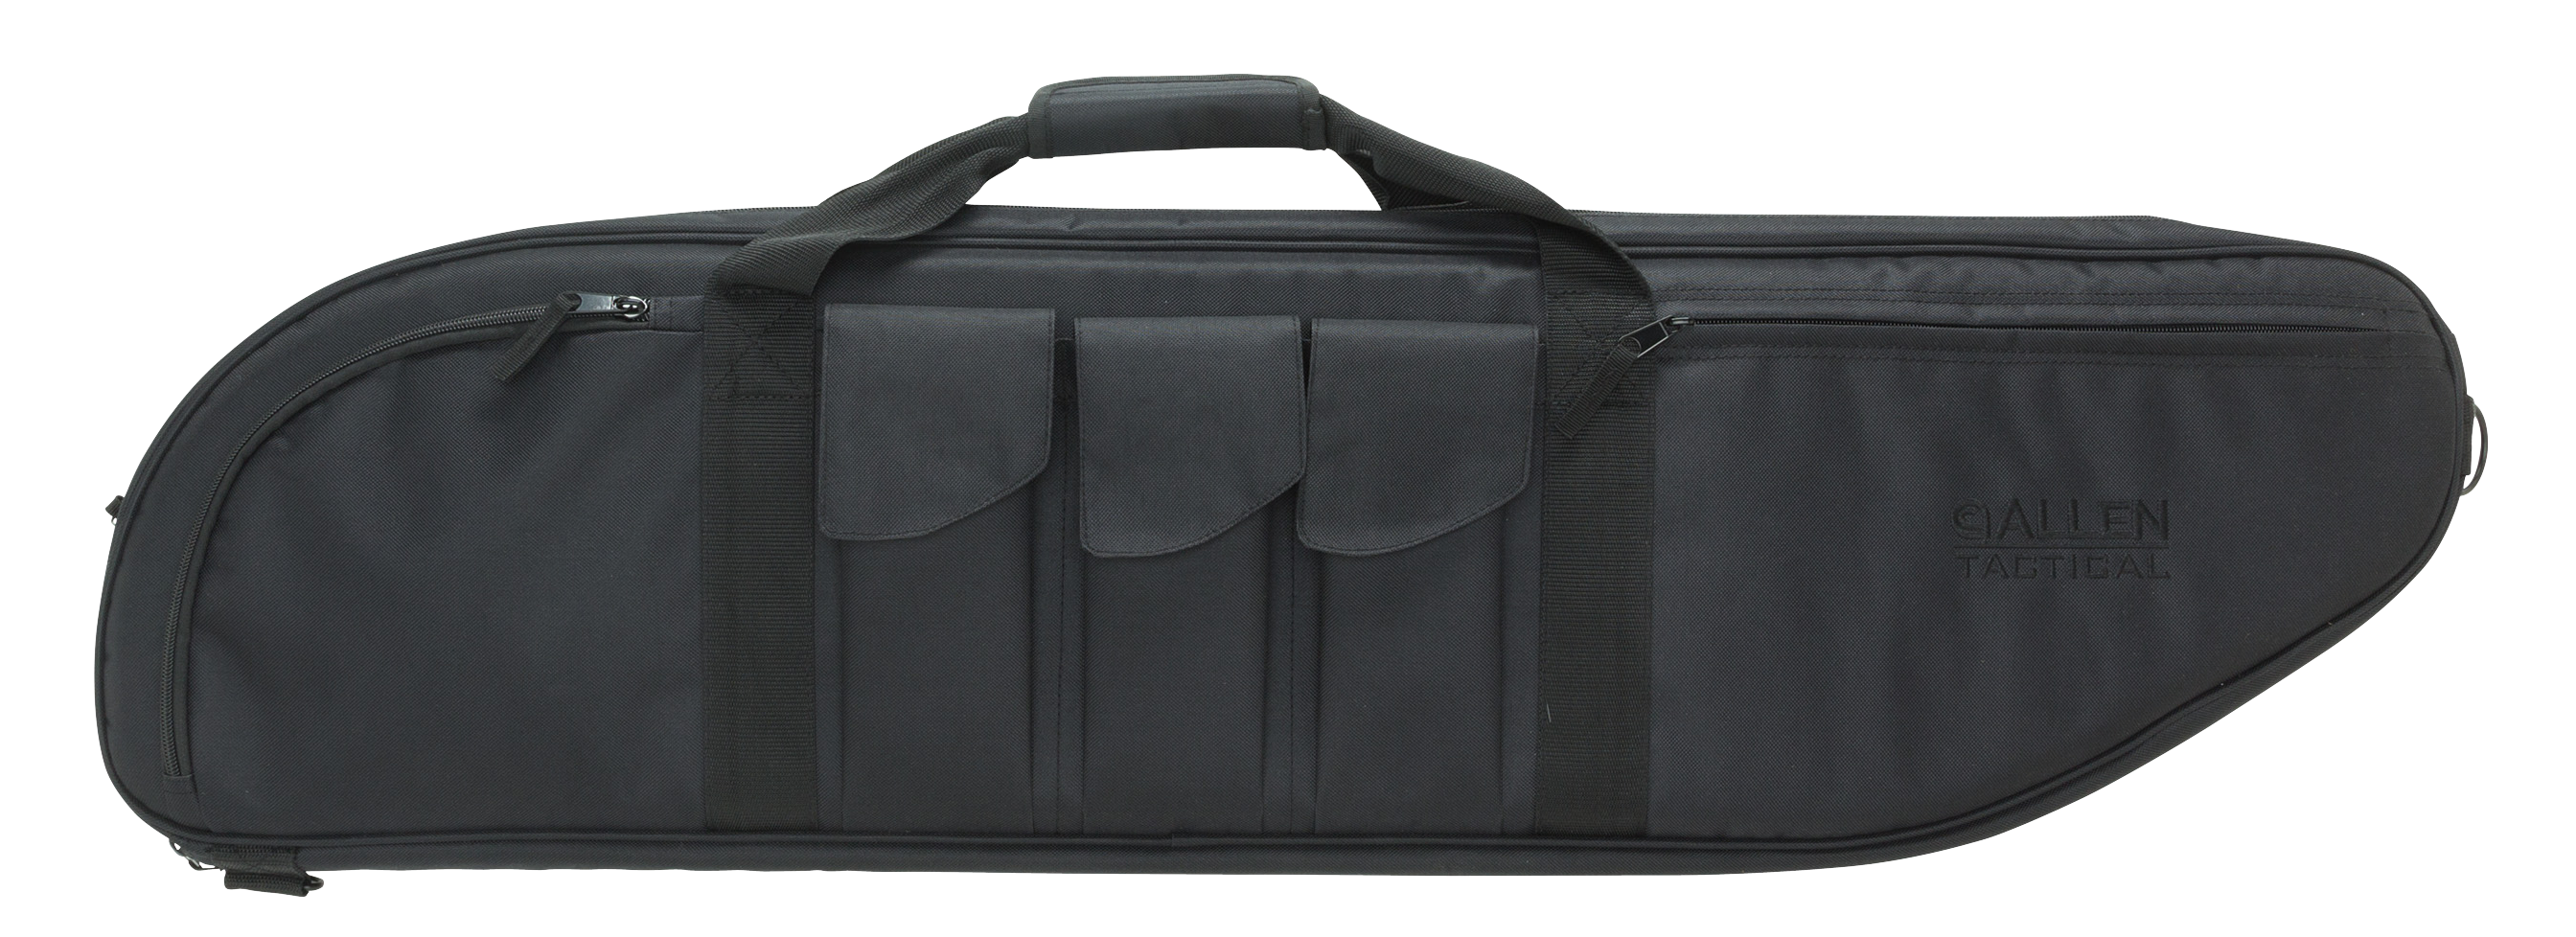 Allen 10929 Batallion Tactical Rifle Case Endura Soft